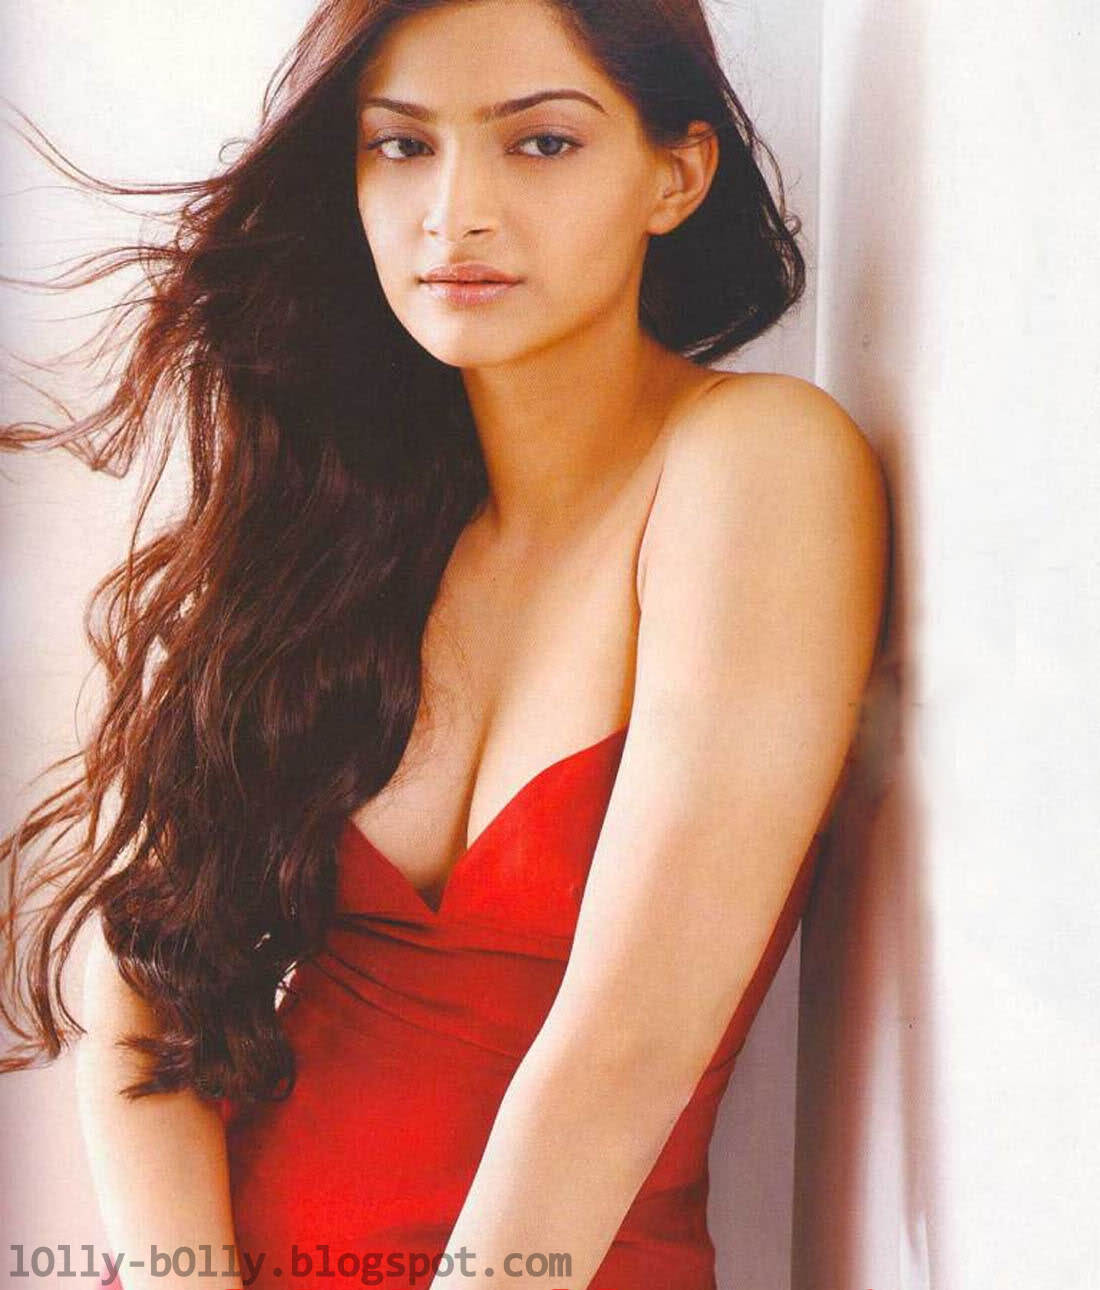 Sonam Kapoor Unseen Hottest Bikini Pictures Gallery  Bollywood World-3566